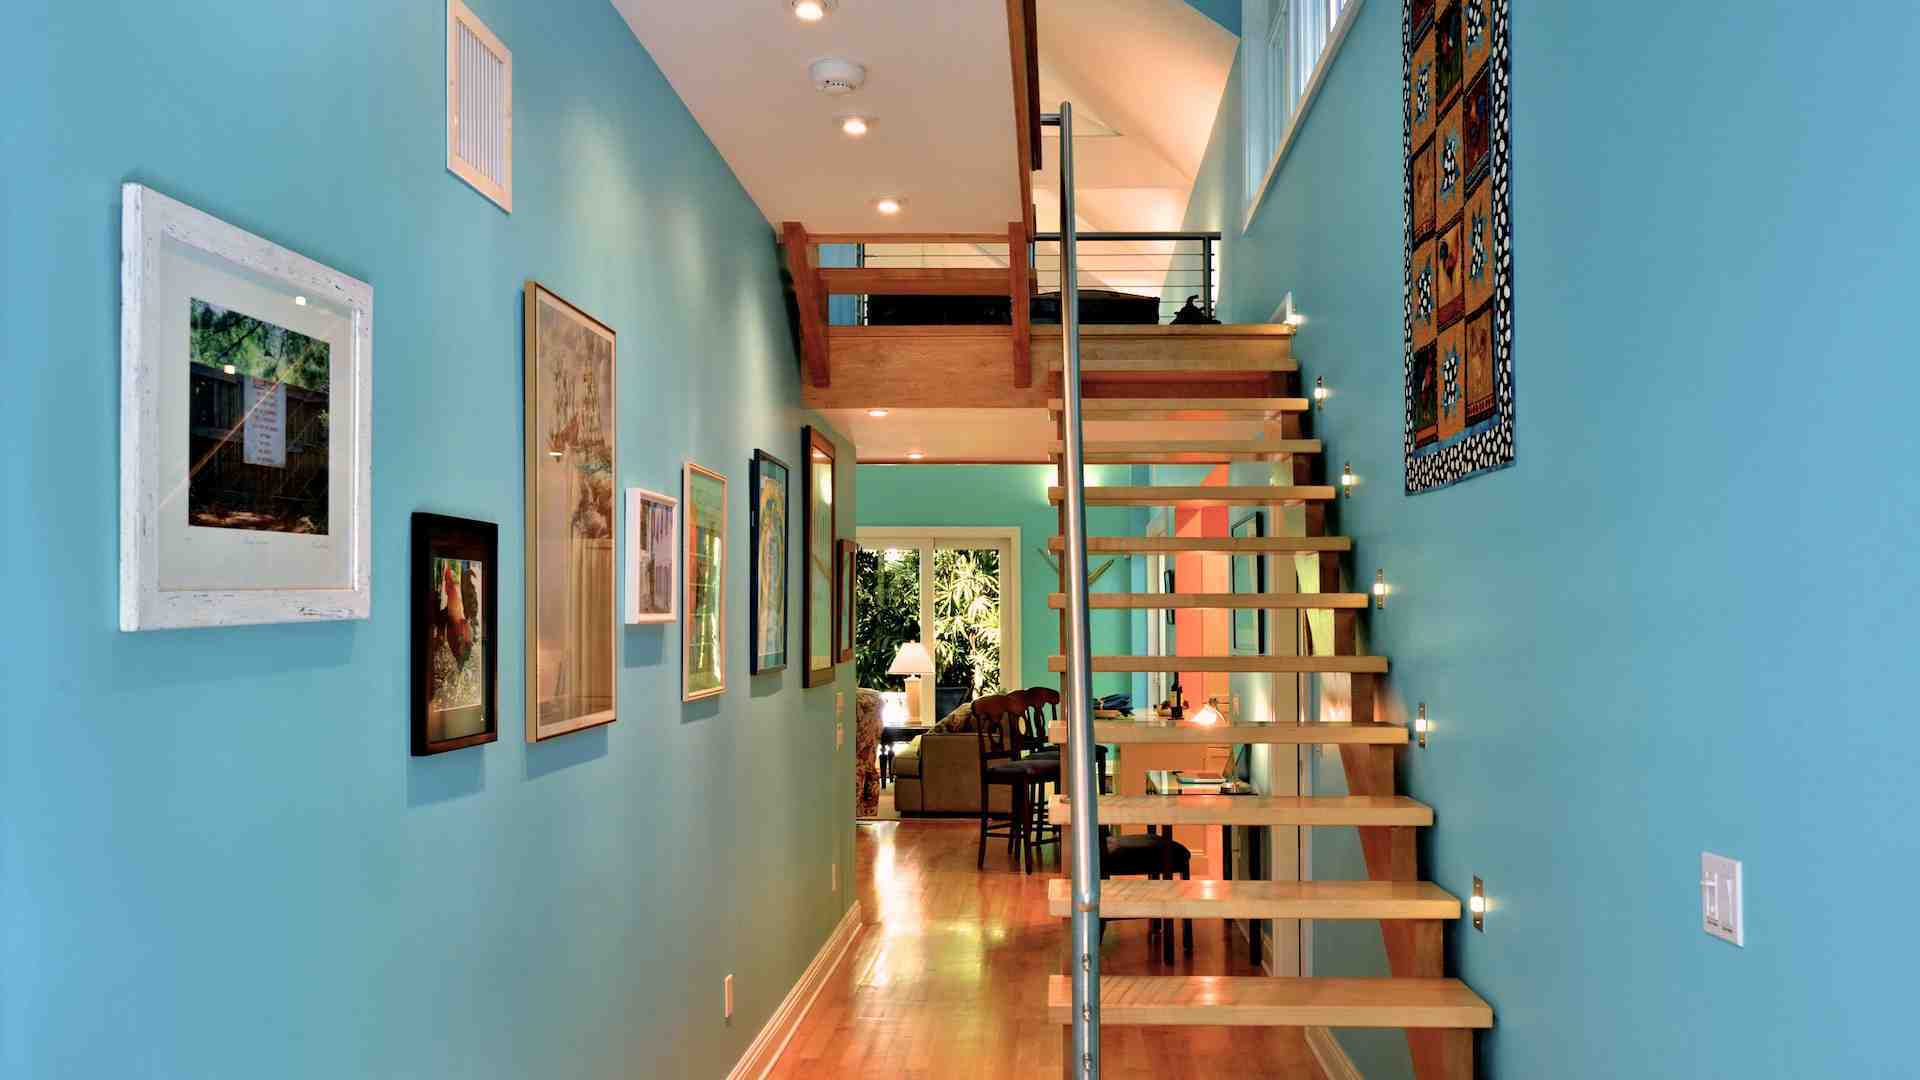 The one of a kind staircase provides access to the 2nd floor, with two bedrooms...